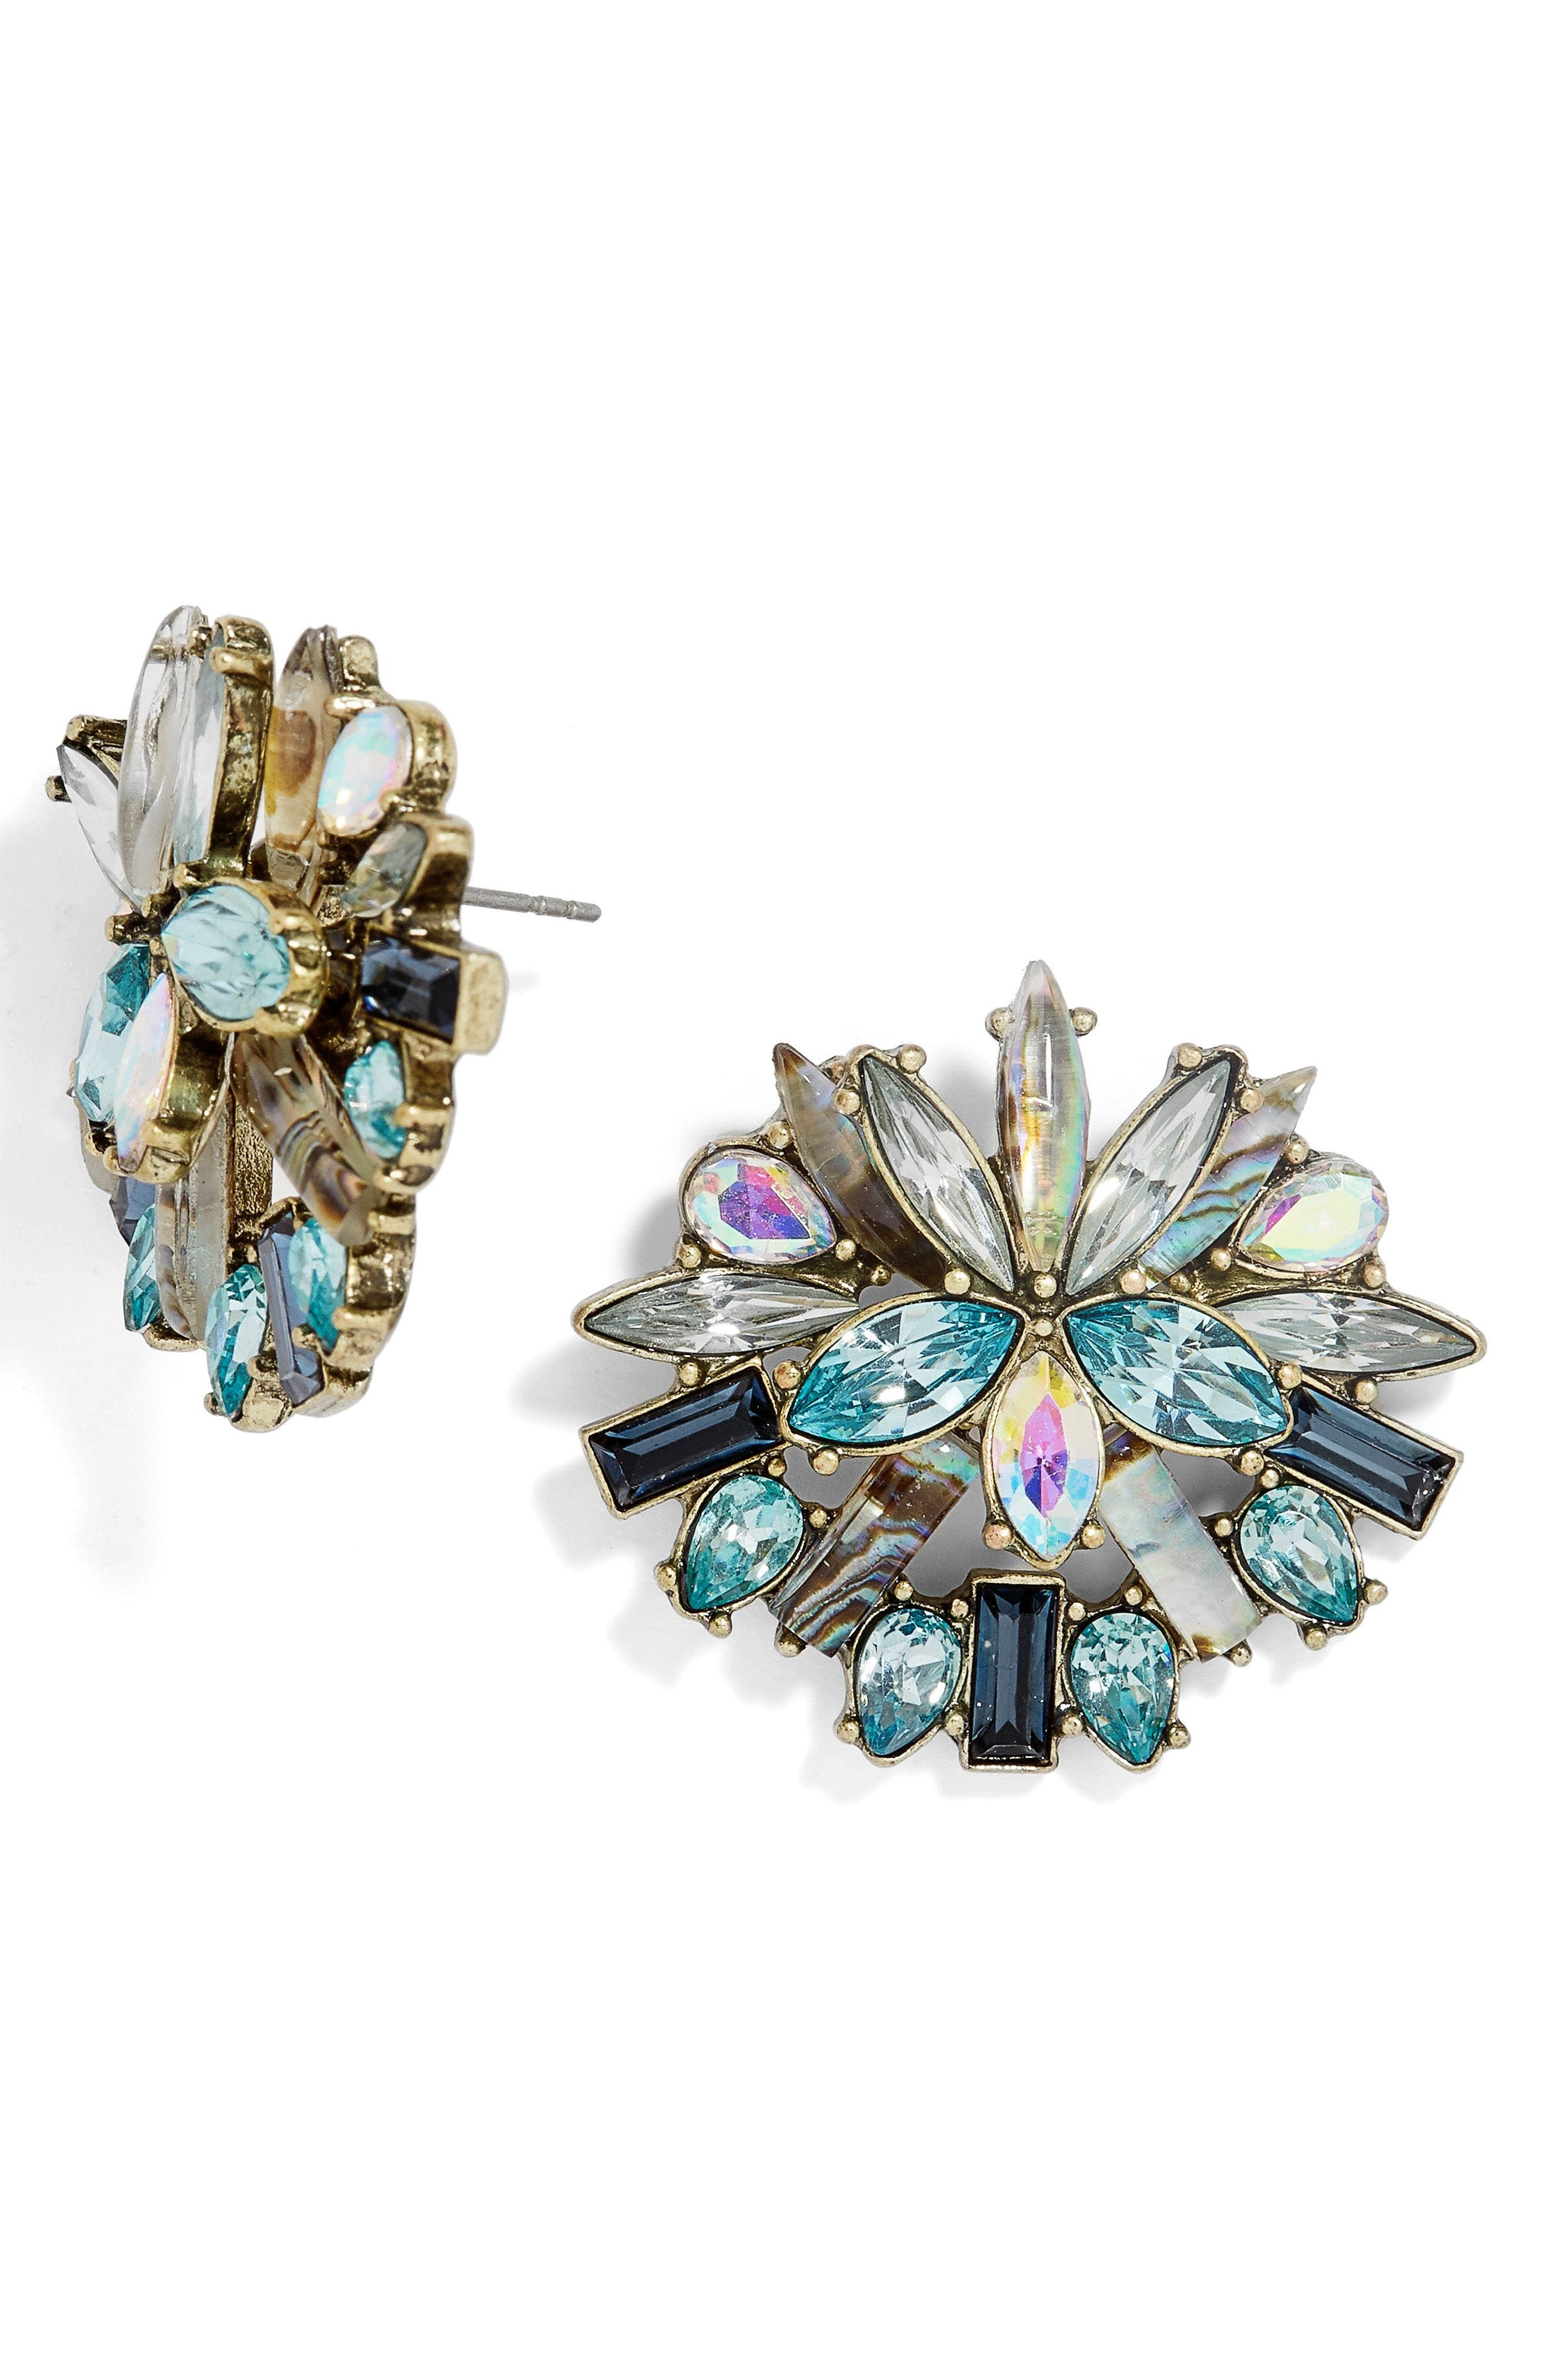 Zaffre Crystal Cluster Stud Earrings,                         Main,                         color, Blue